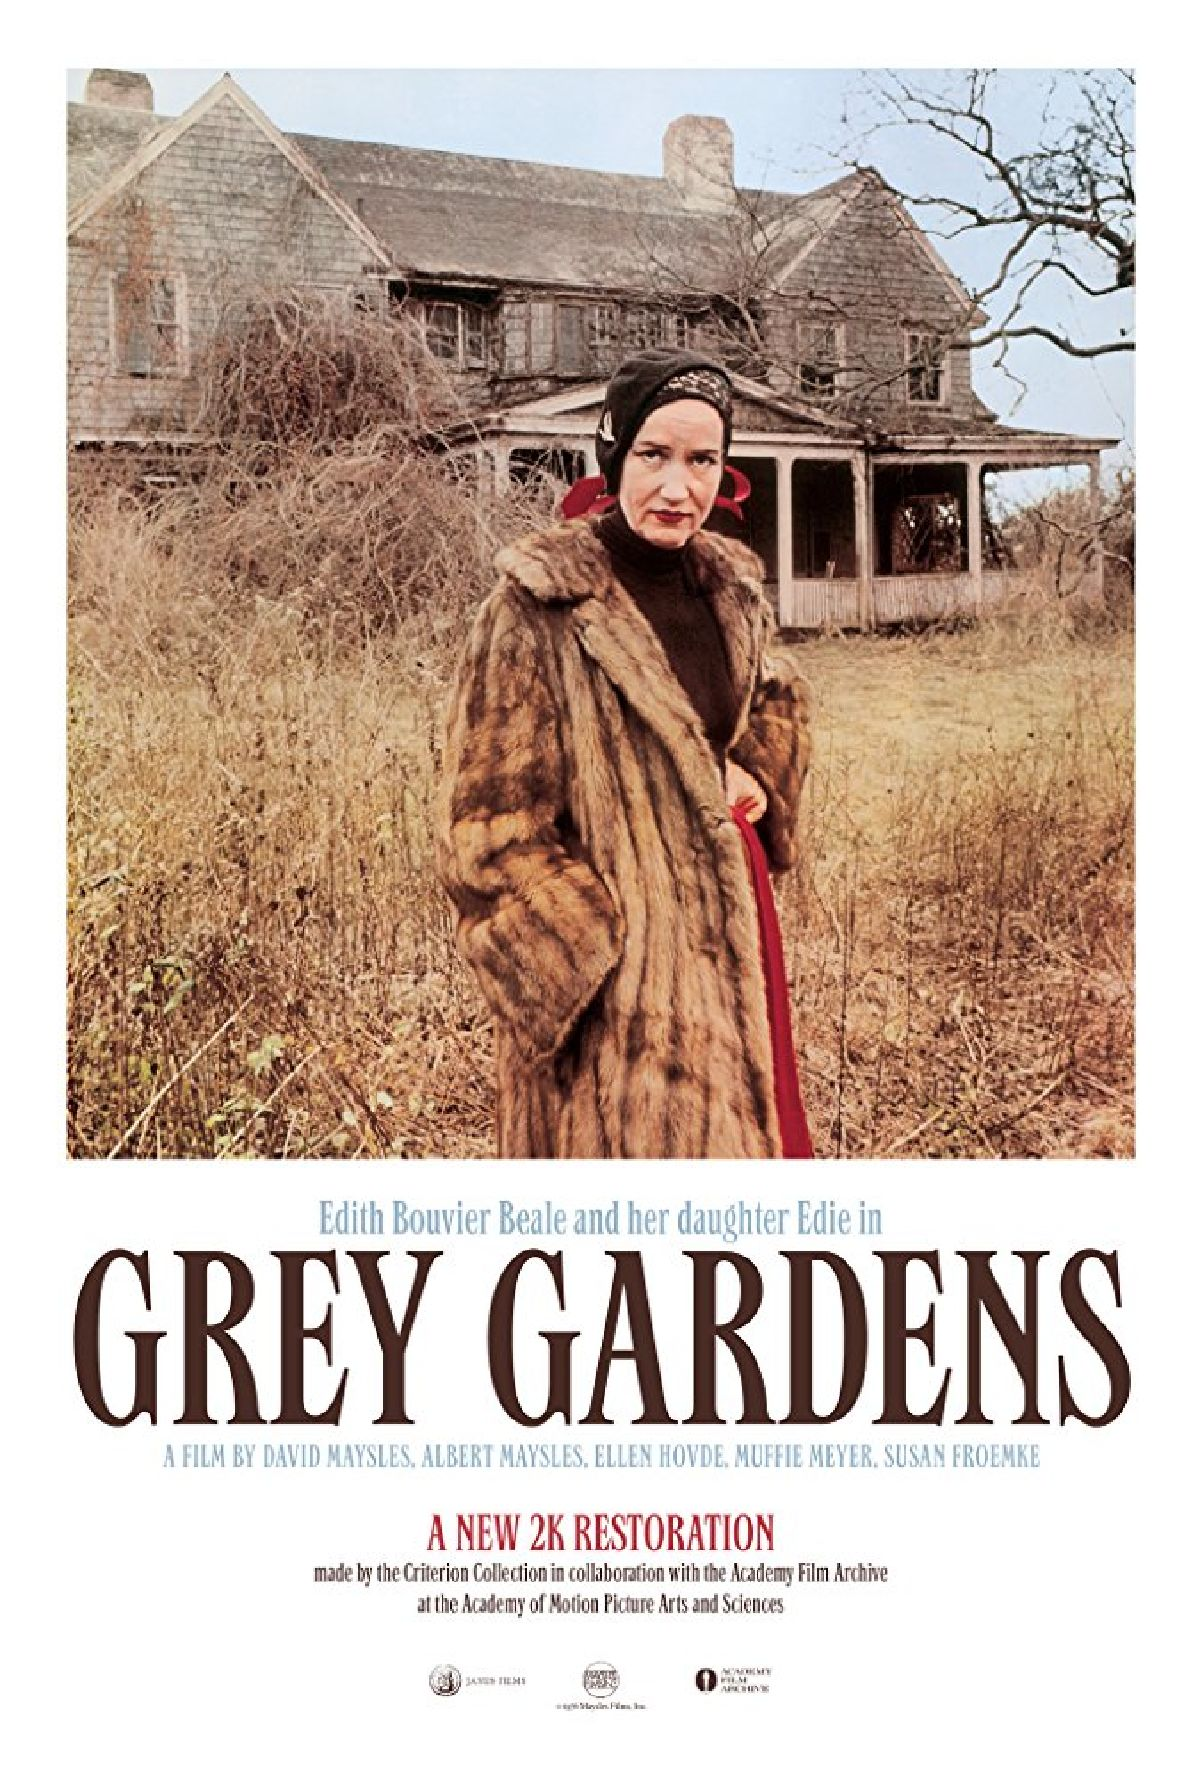 'Grey Gardens' movie poster